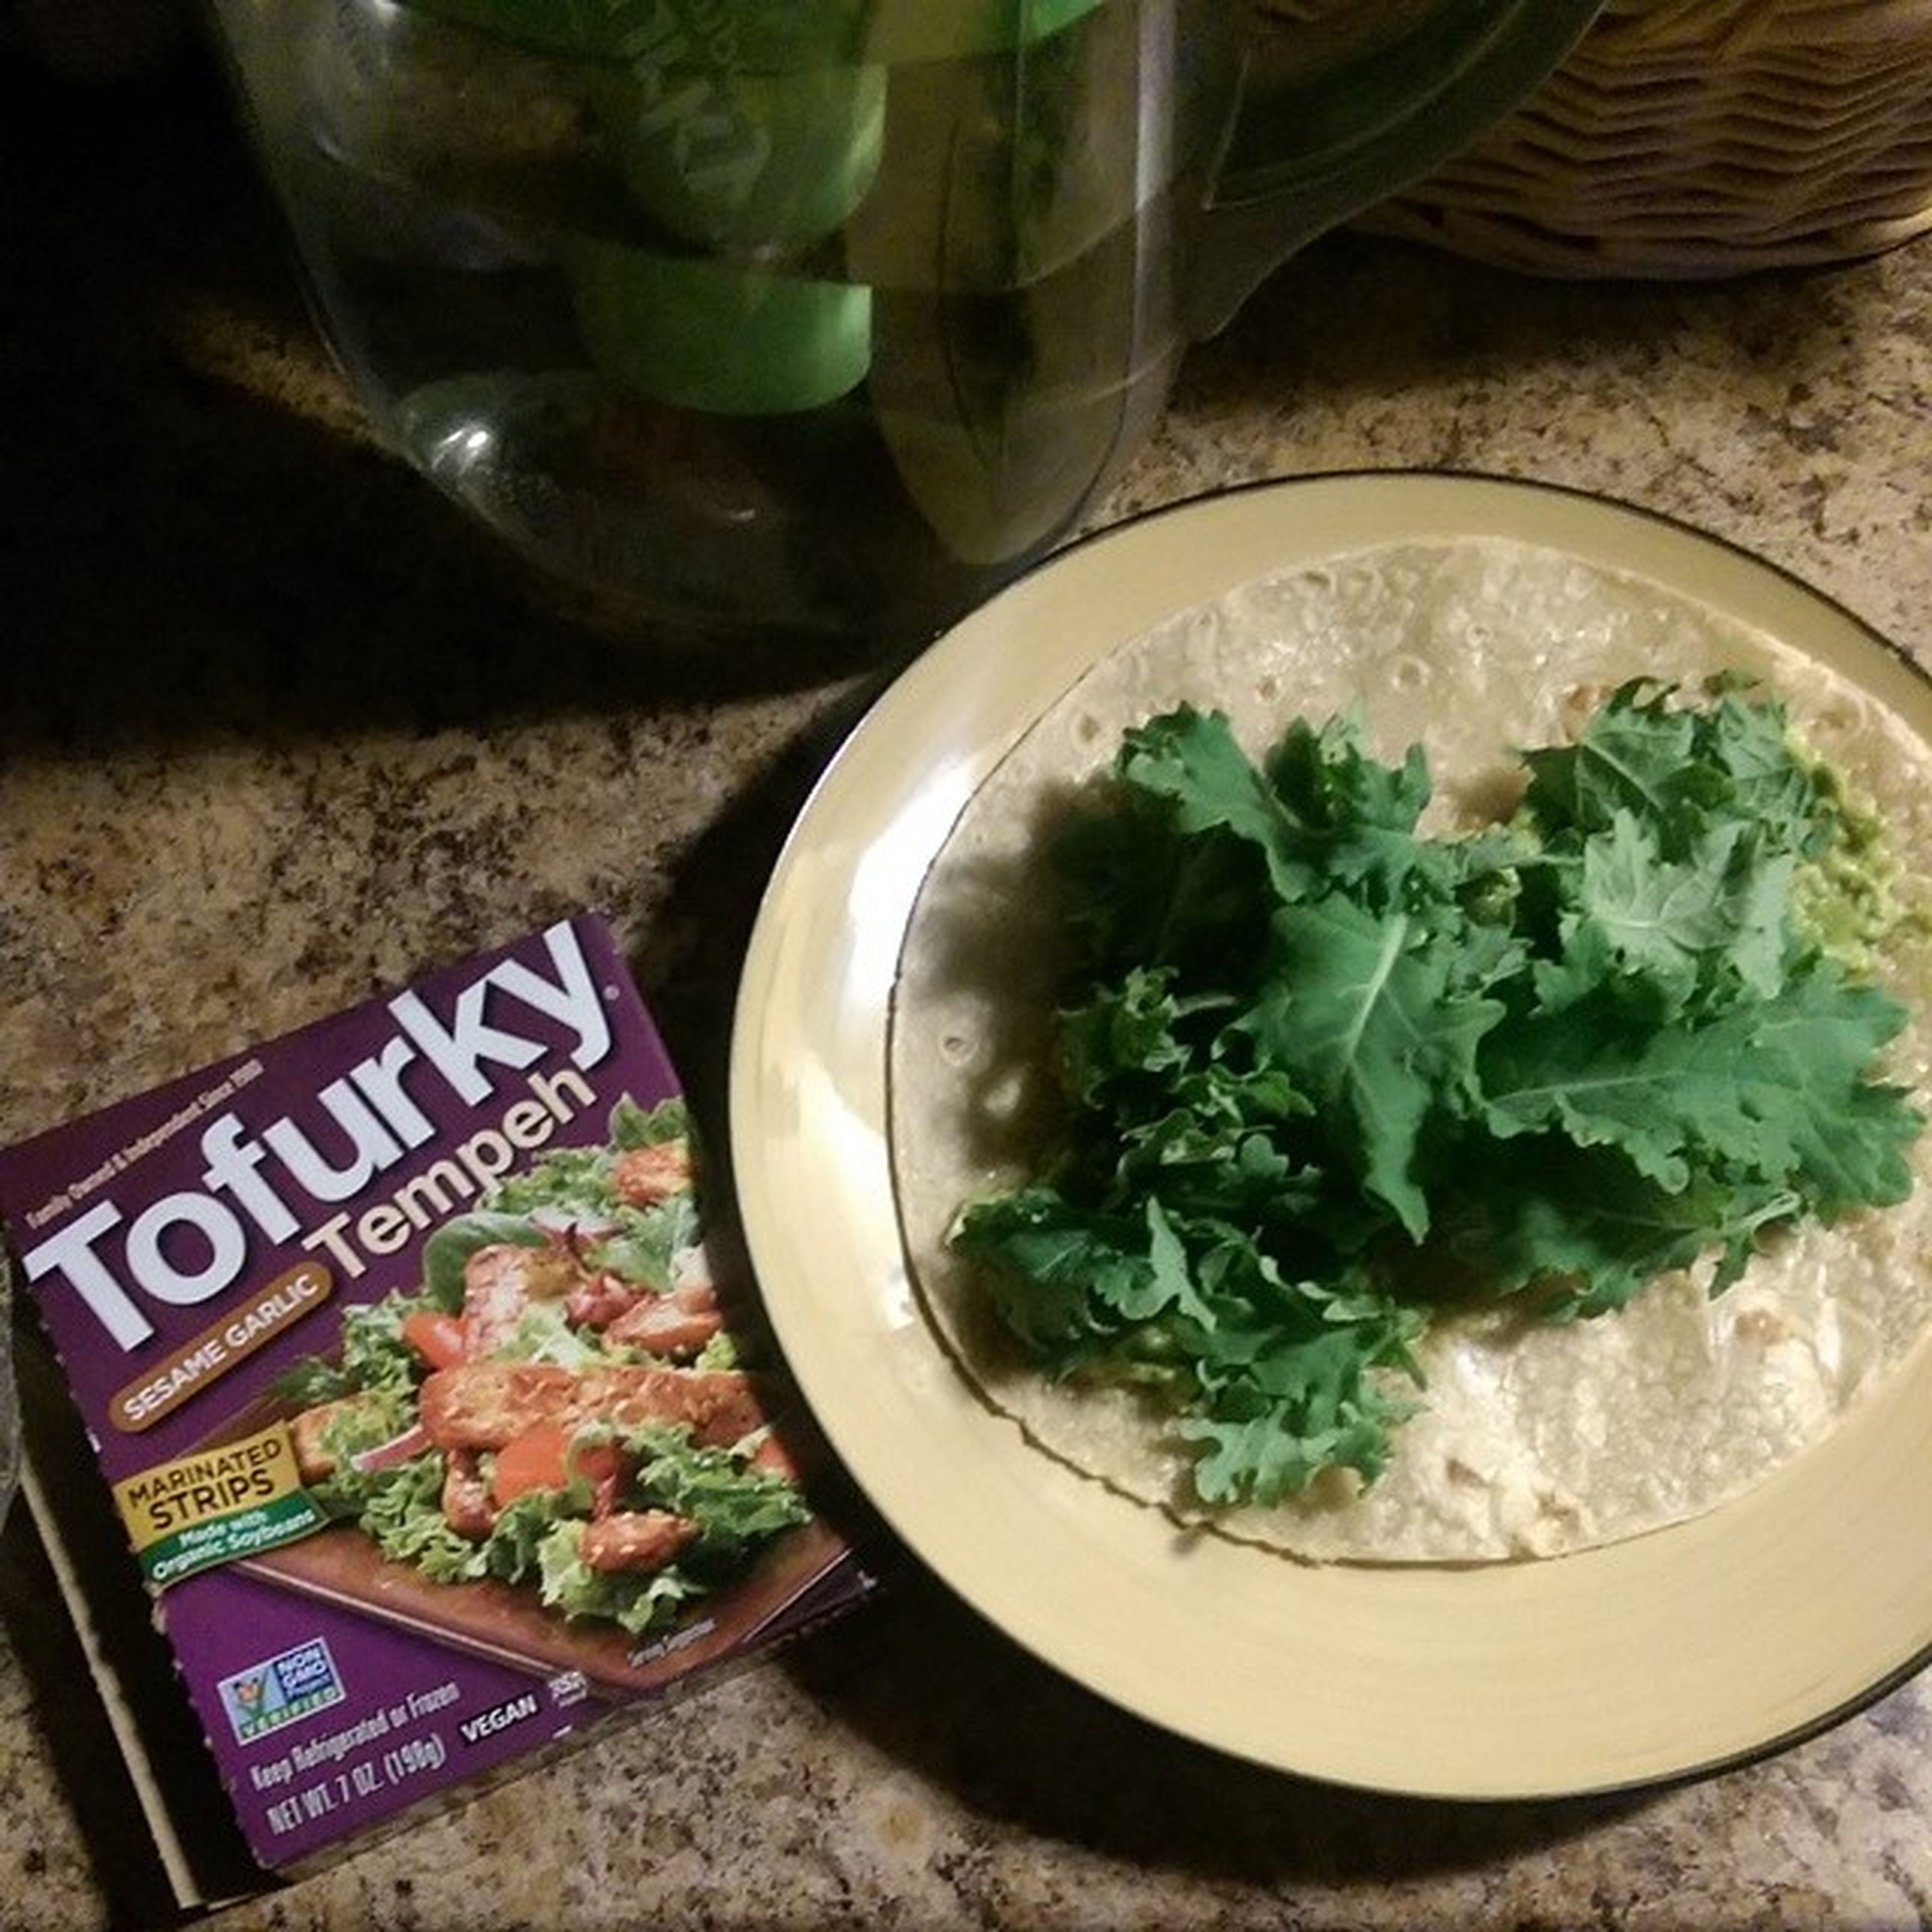 Dinner Tofurky Sesamegarlic Tempeh in a foodforlife brownrice wrap with guacamole and babykale organic